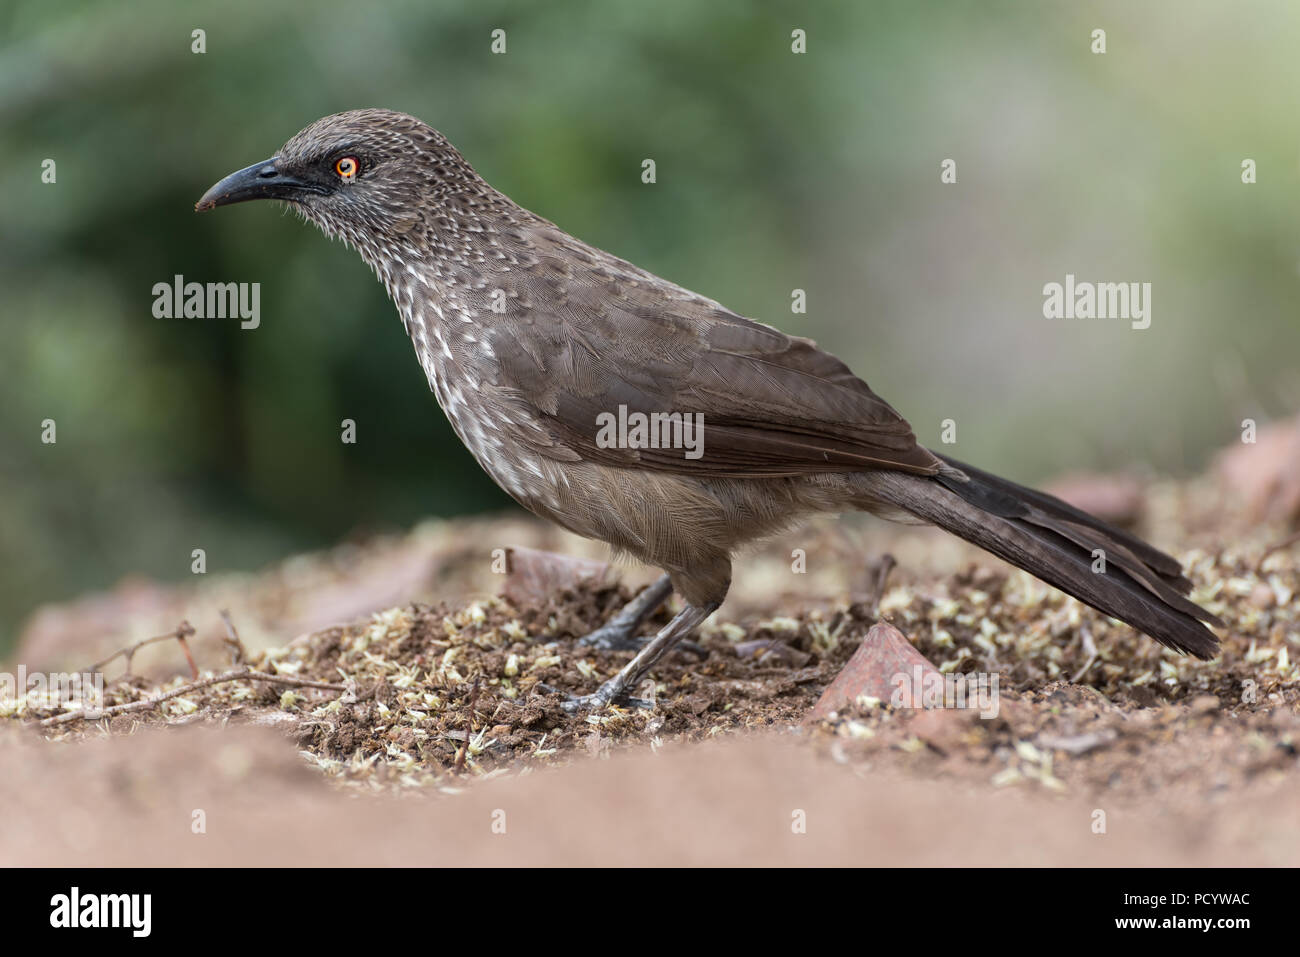 Close up portrait of arrow-marked babbler standing on ground with soft green background, Kruger National park, South Africa - Stock Image